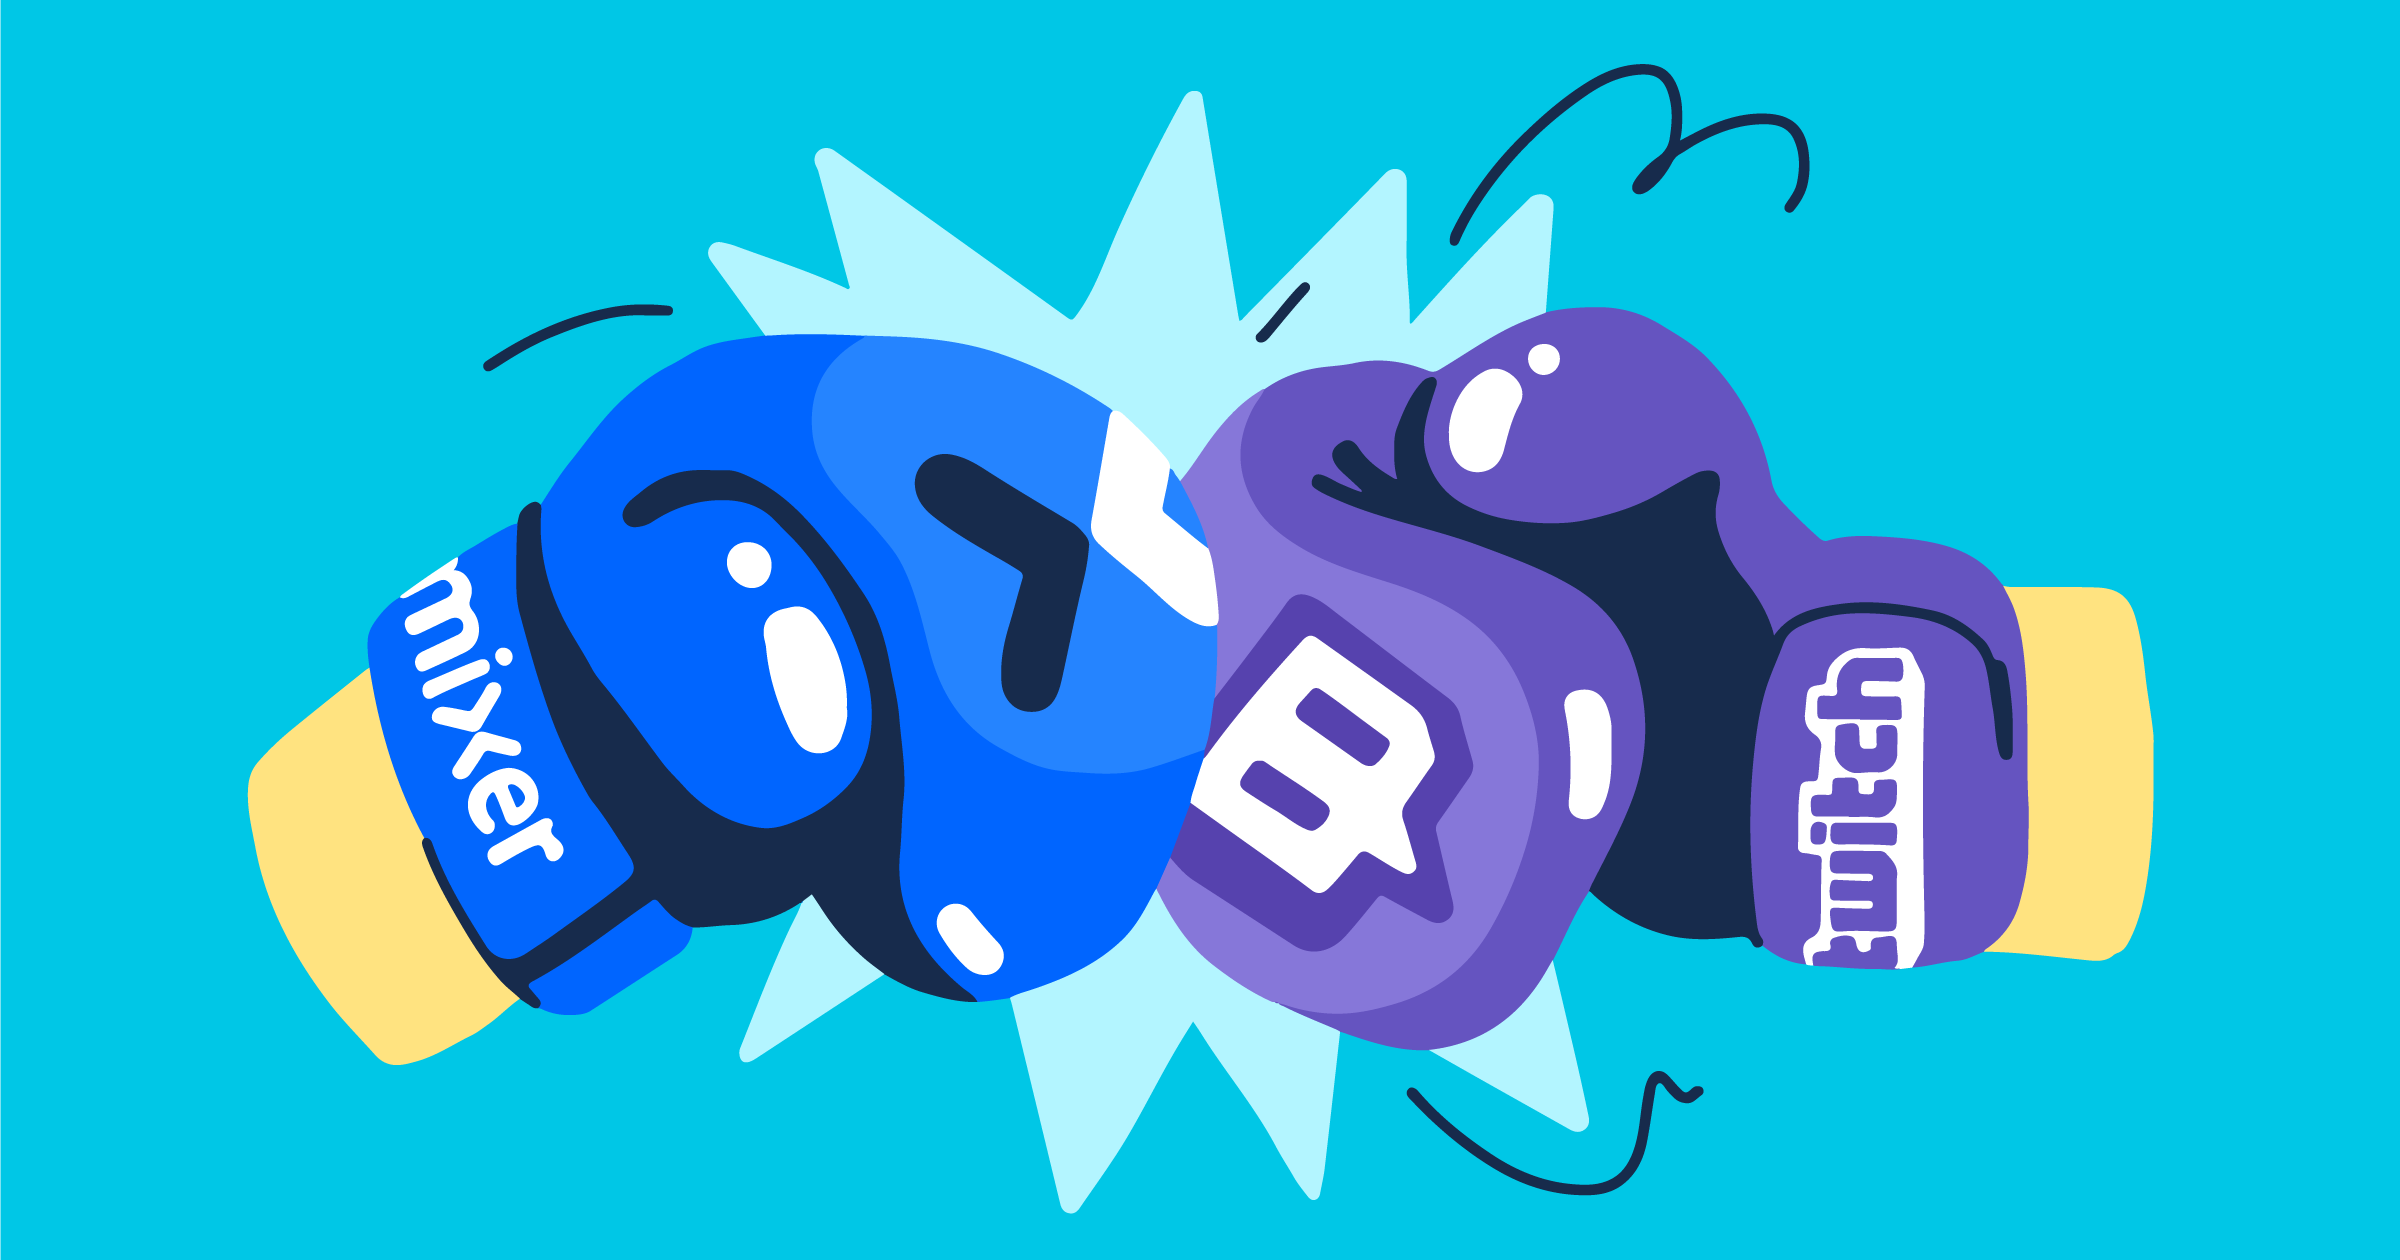 Mixer vs. Twitch: Which One Is Better? – Restream Blog